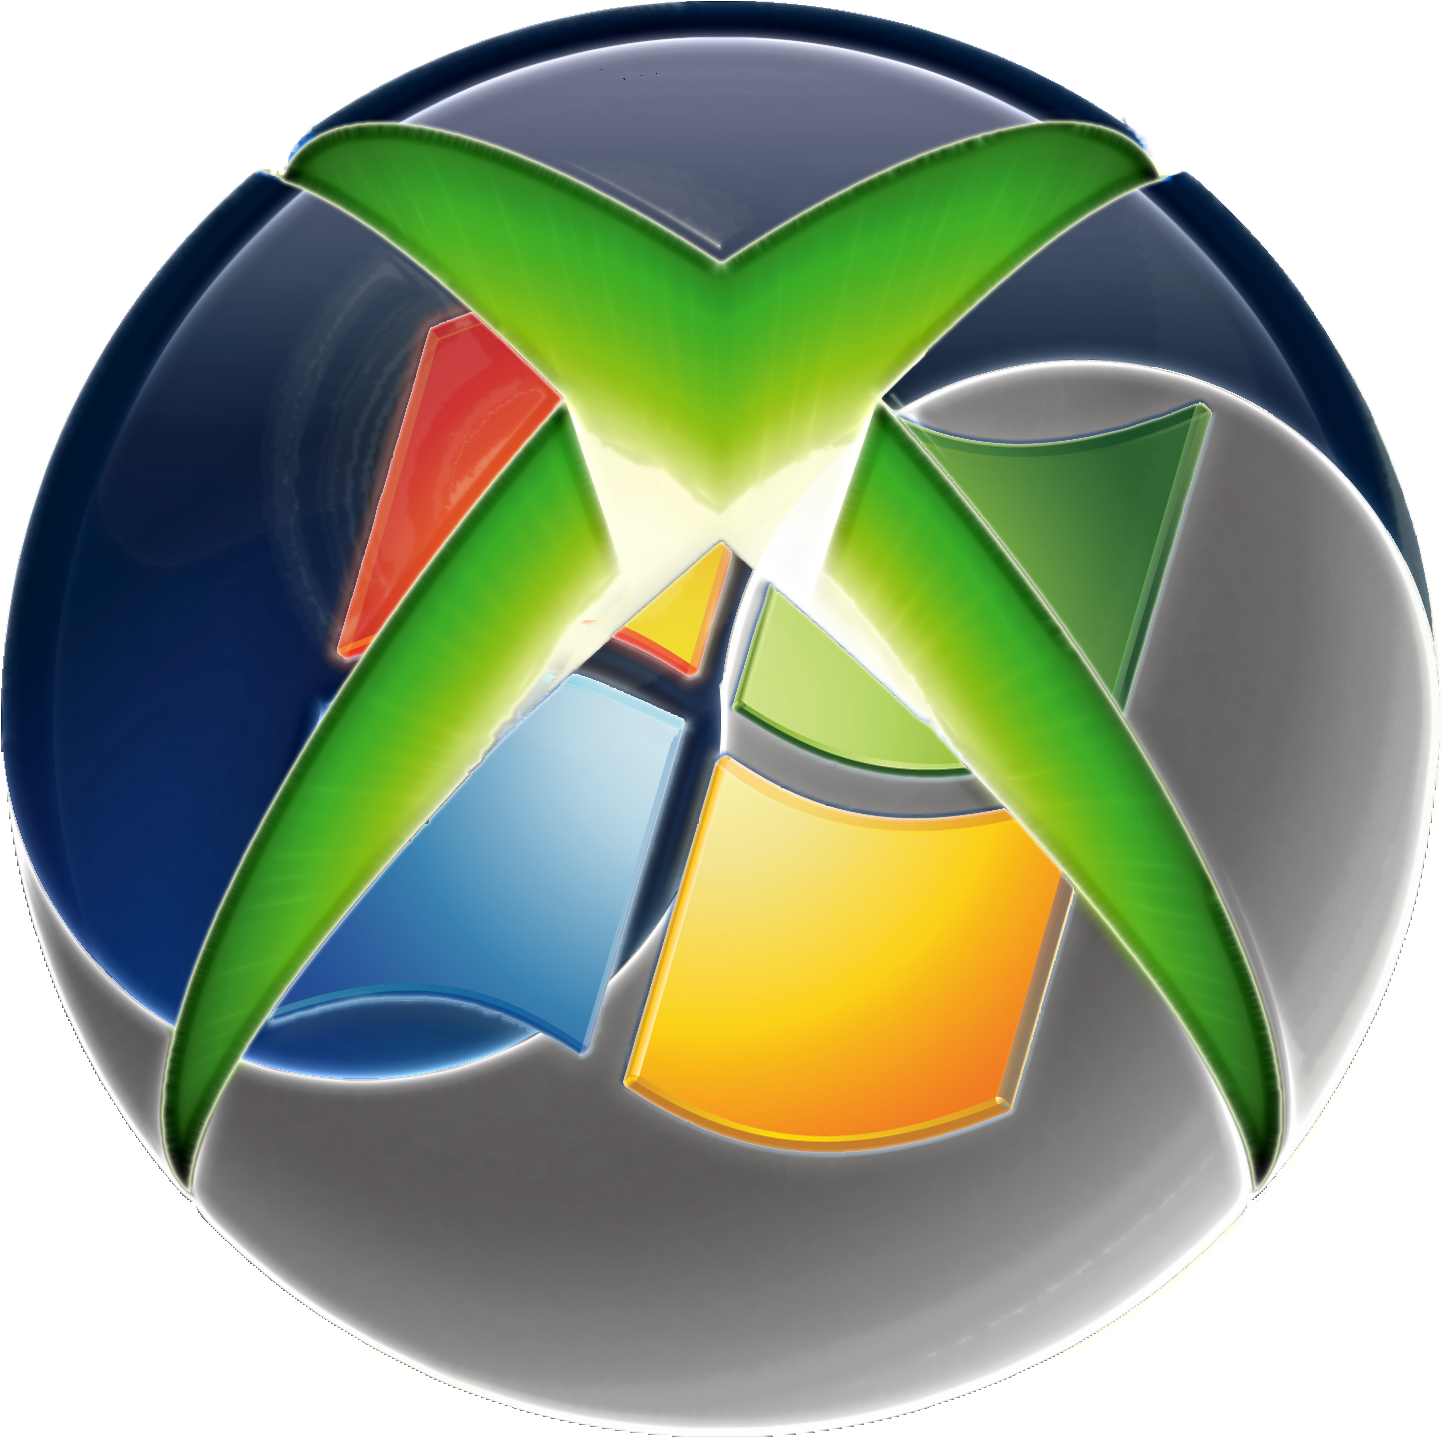 Download Xbox Logo Png Hd Transparent Background Xbox Logo Png